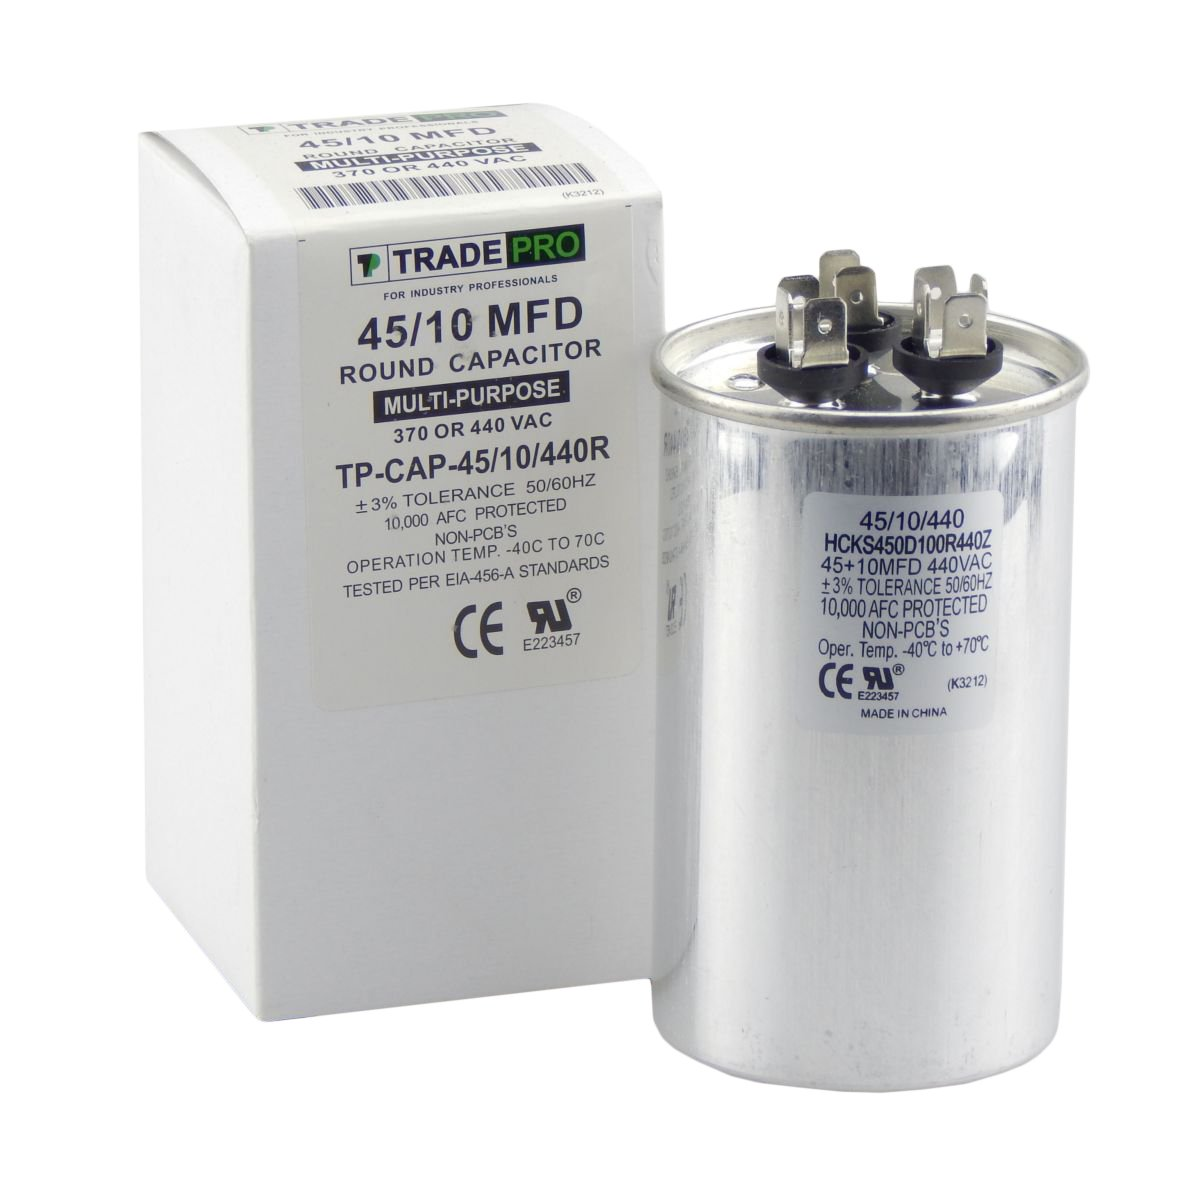 TradePro 45/10 MFD 440 or 370 Volt Round Run Capacitor Replacement